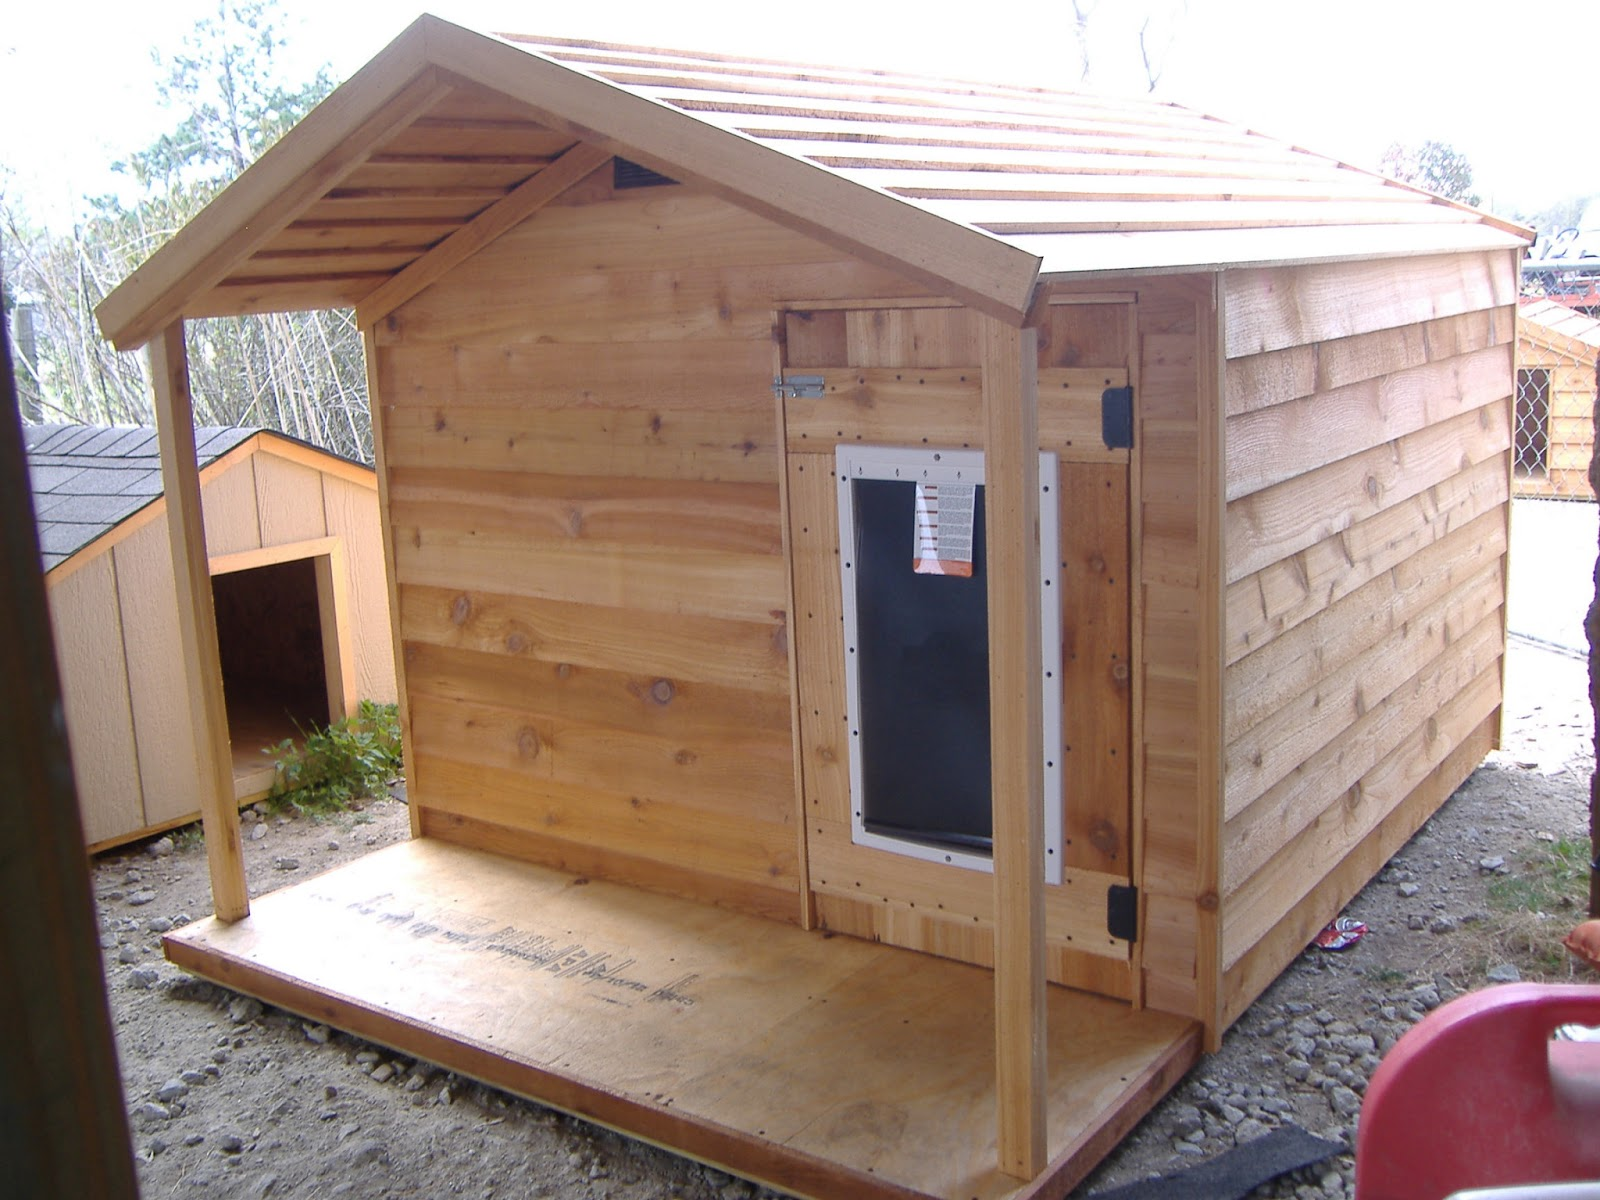 Insulated Dog House For Sale Insulated Dog House For Sale Quotes